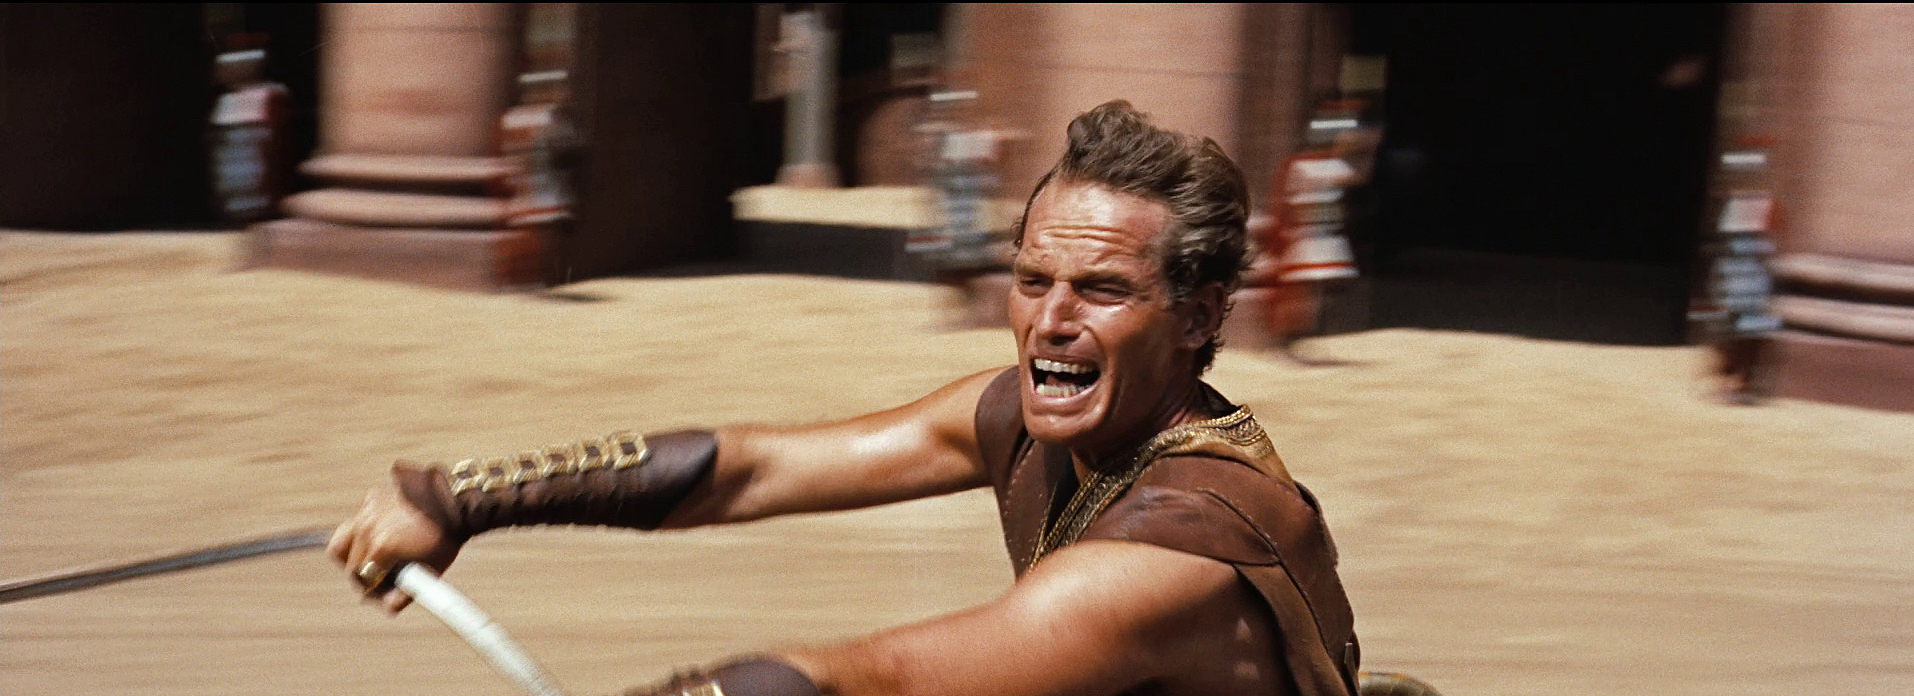 Ben Hur Heston Race